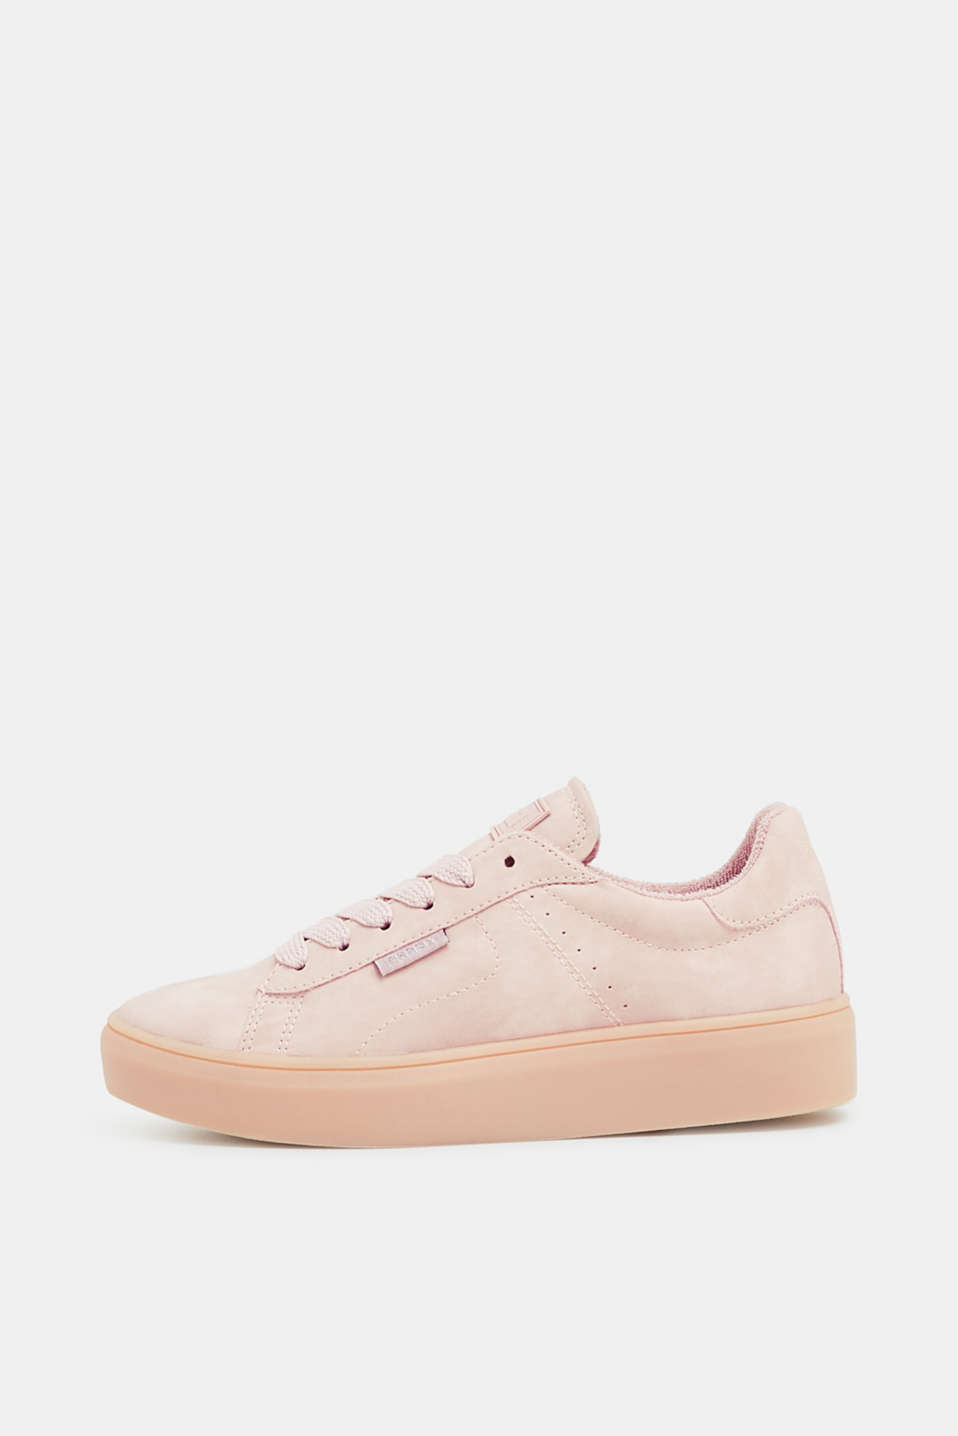 Esprit - Platform trainers in faux nubuck leather